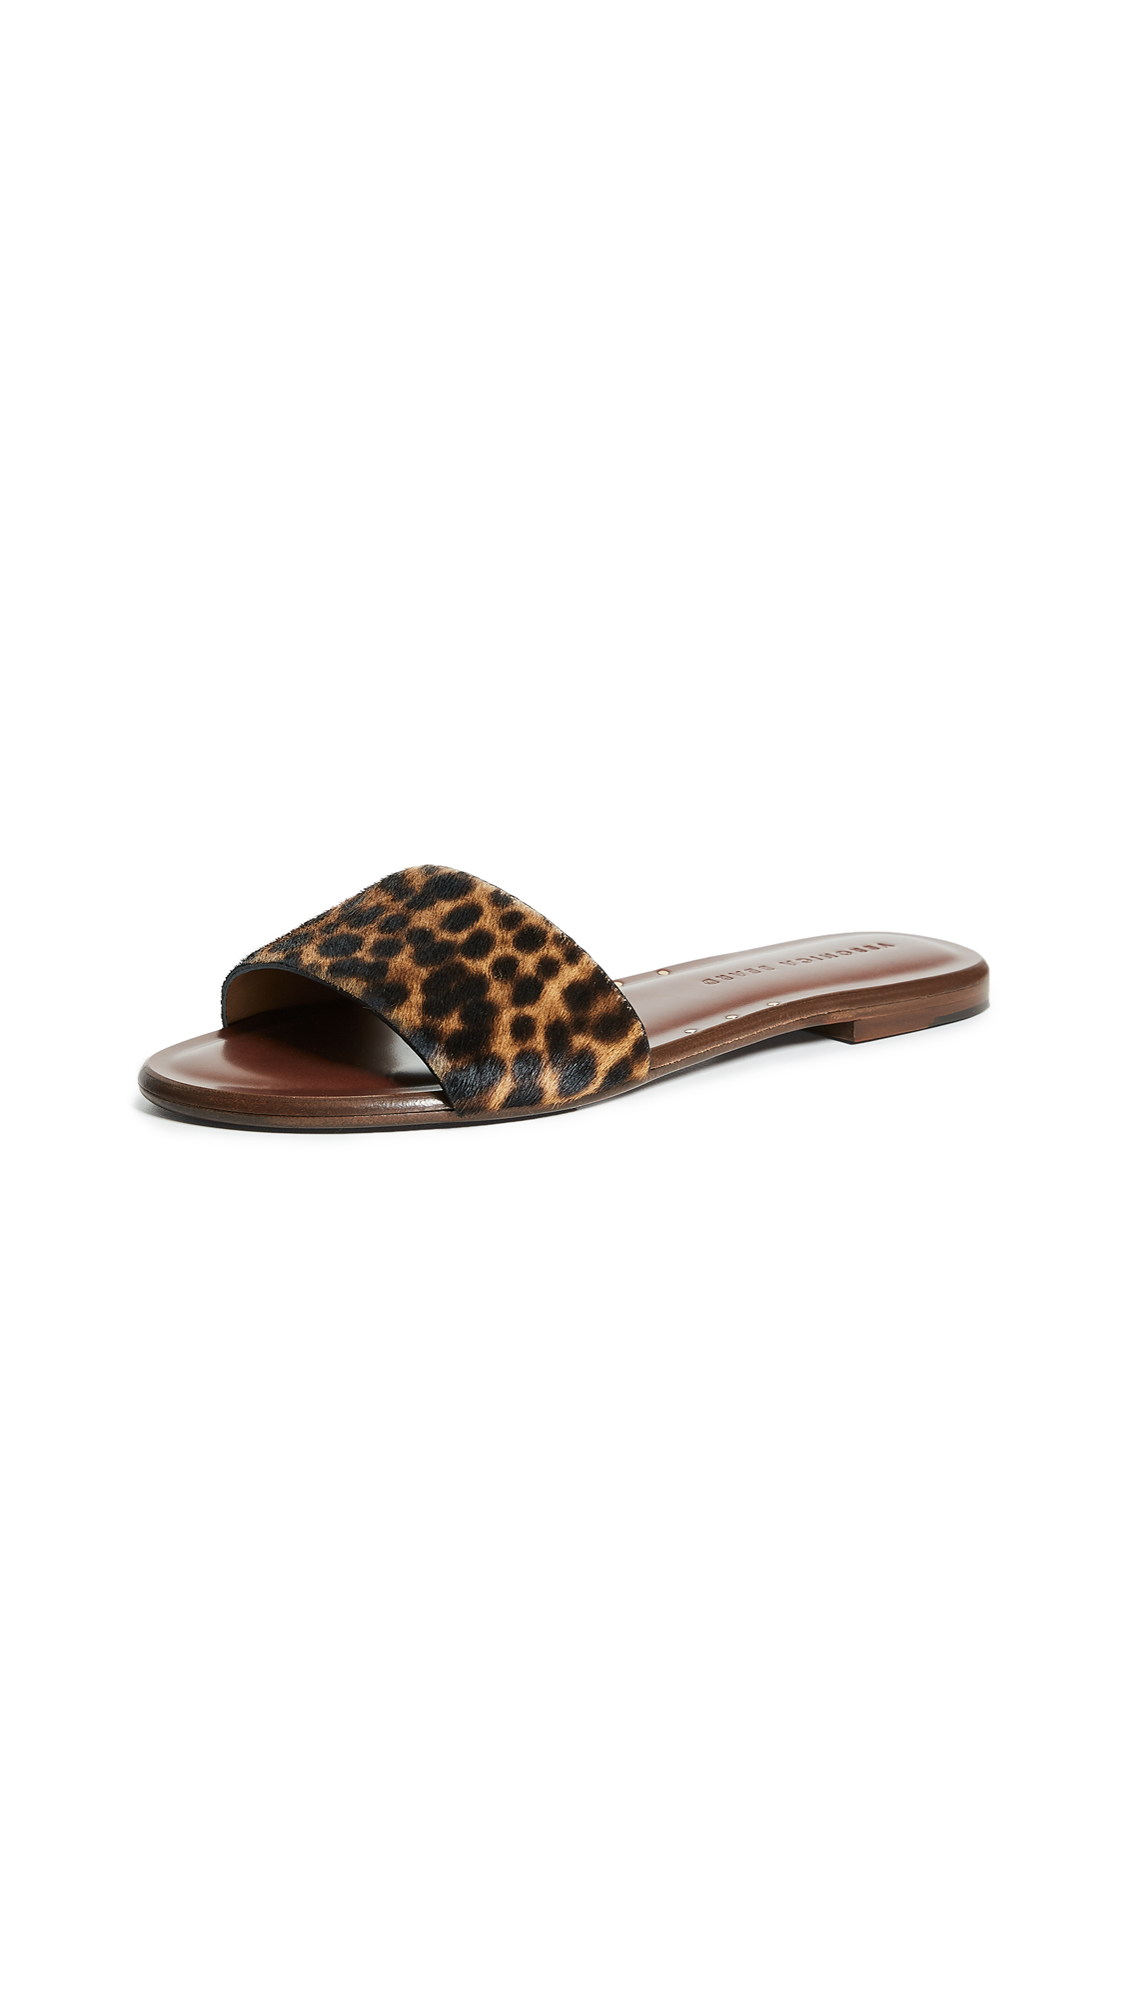 Veronica Beard Flor Leopard Haircalf - Leopard